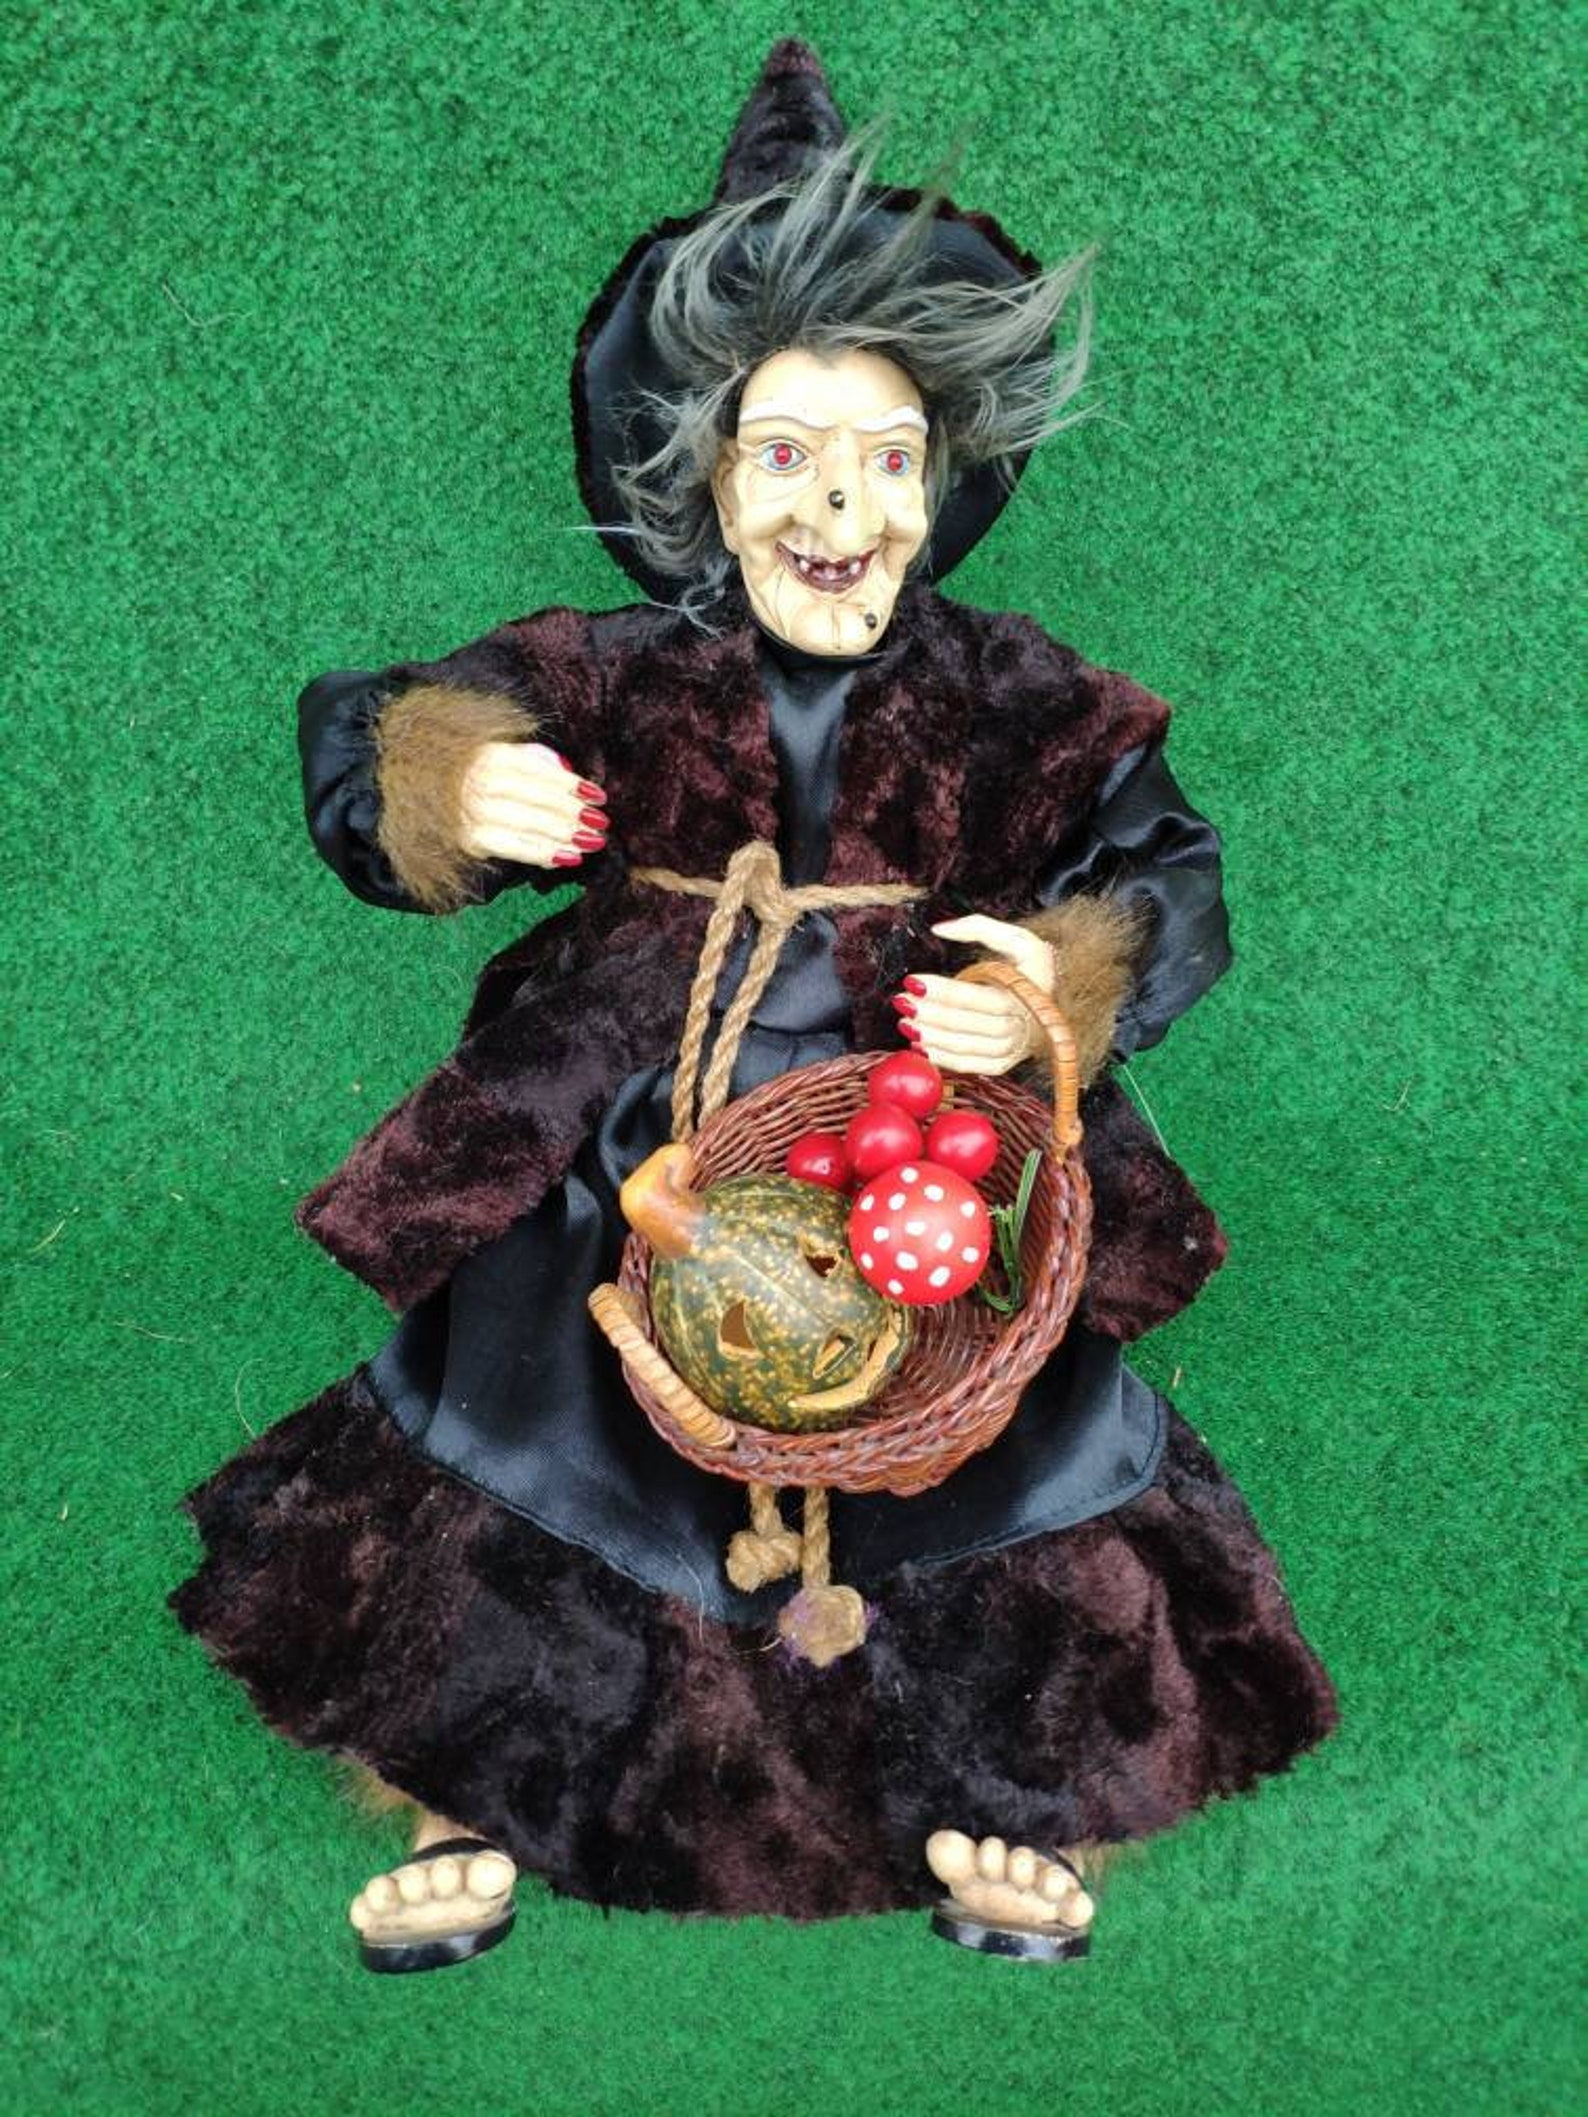 German Good luck Kitchen Witch doll with light and sound, Fairy Witch with basket and pumpkin Halloween decoration